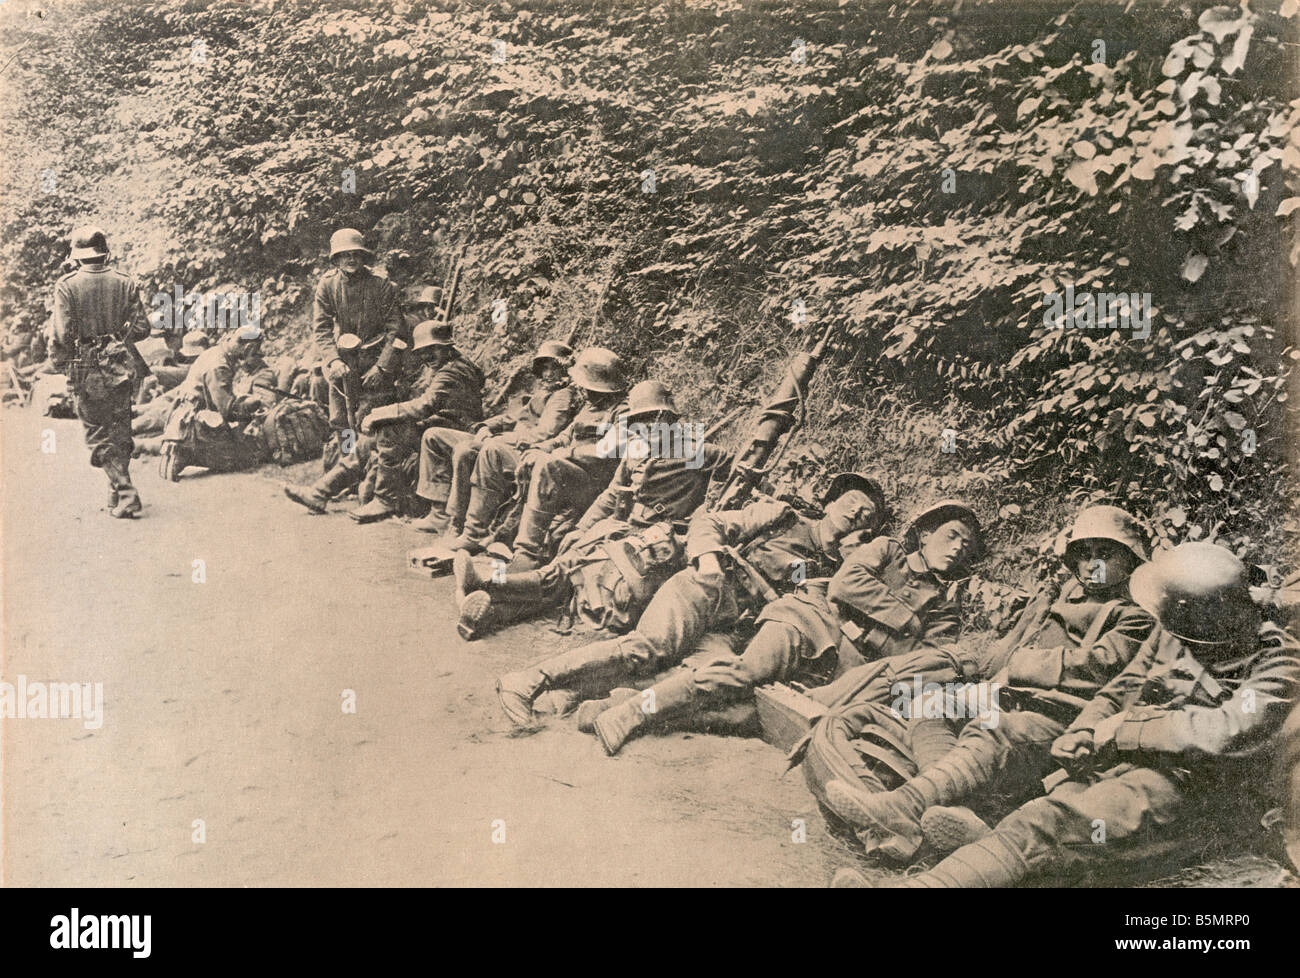 9 1918 6 9 A1 2 E WW1 West Fr Ger troops in Rast Photo World War 1 Western Front German major offensive March July - Stock Image